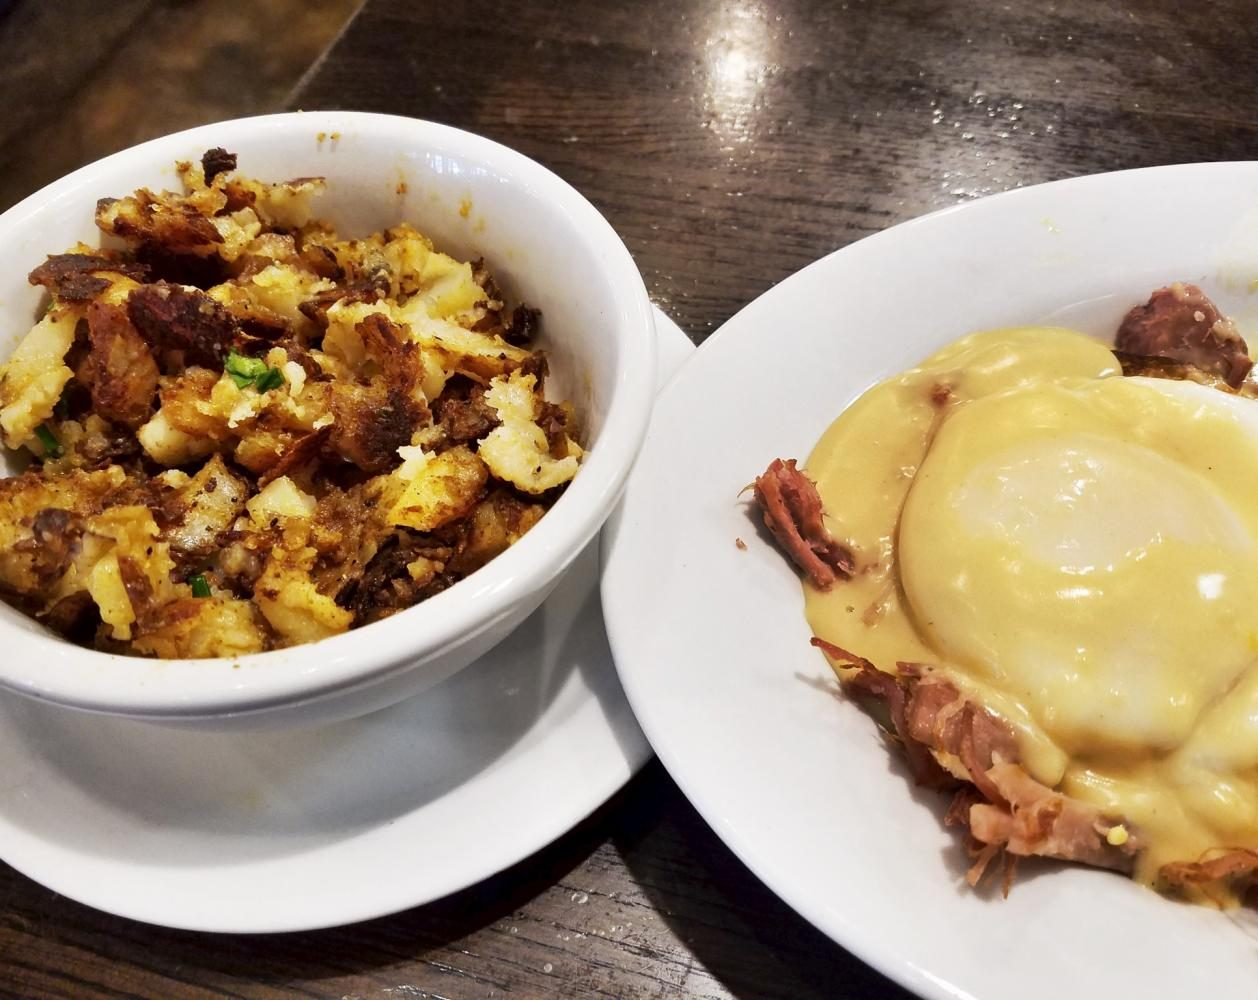 Mad Rooster Cafe's Eggs Benedict and potatoes